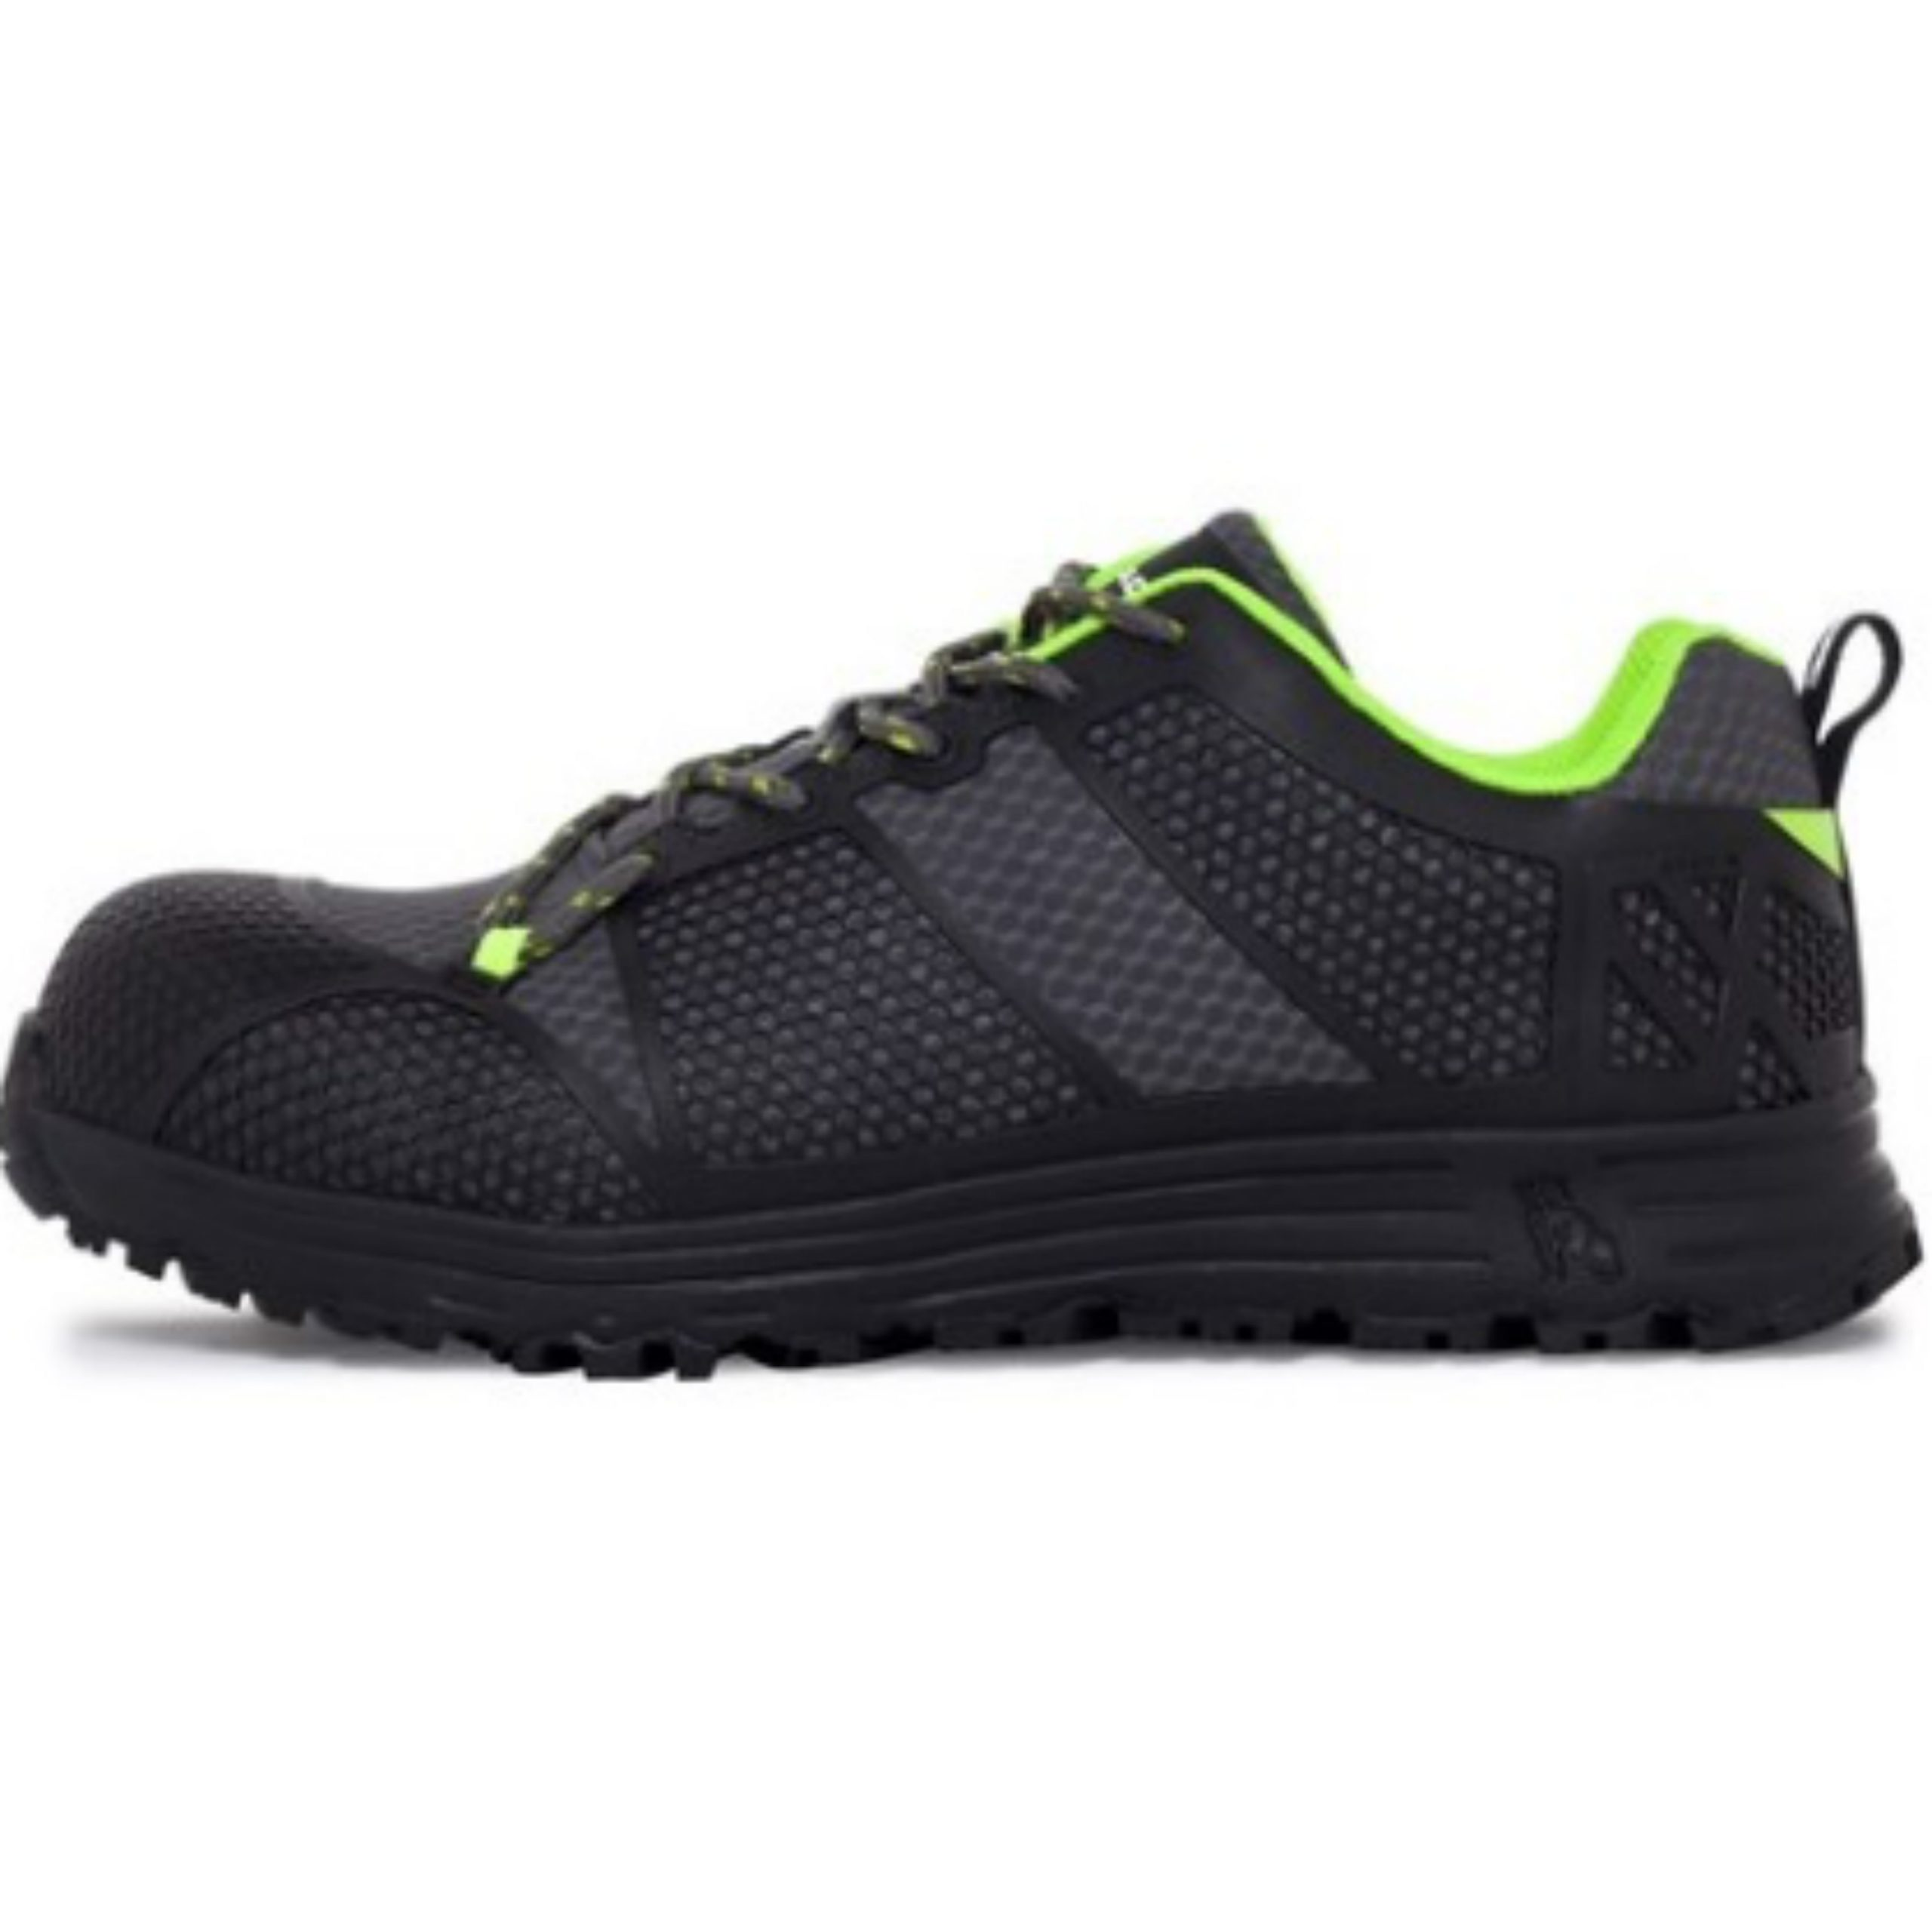 Mack Pitch Lace Up Safety Shoes Handling Equipment Canterbury